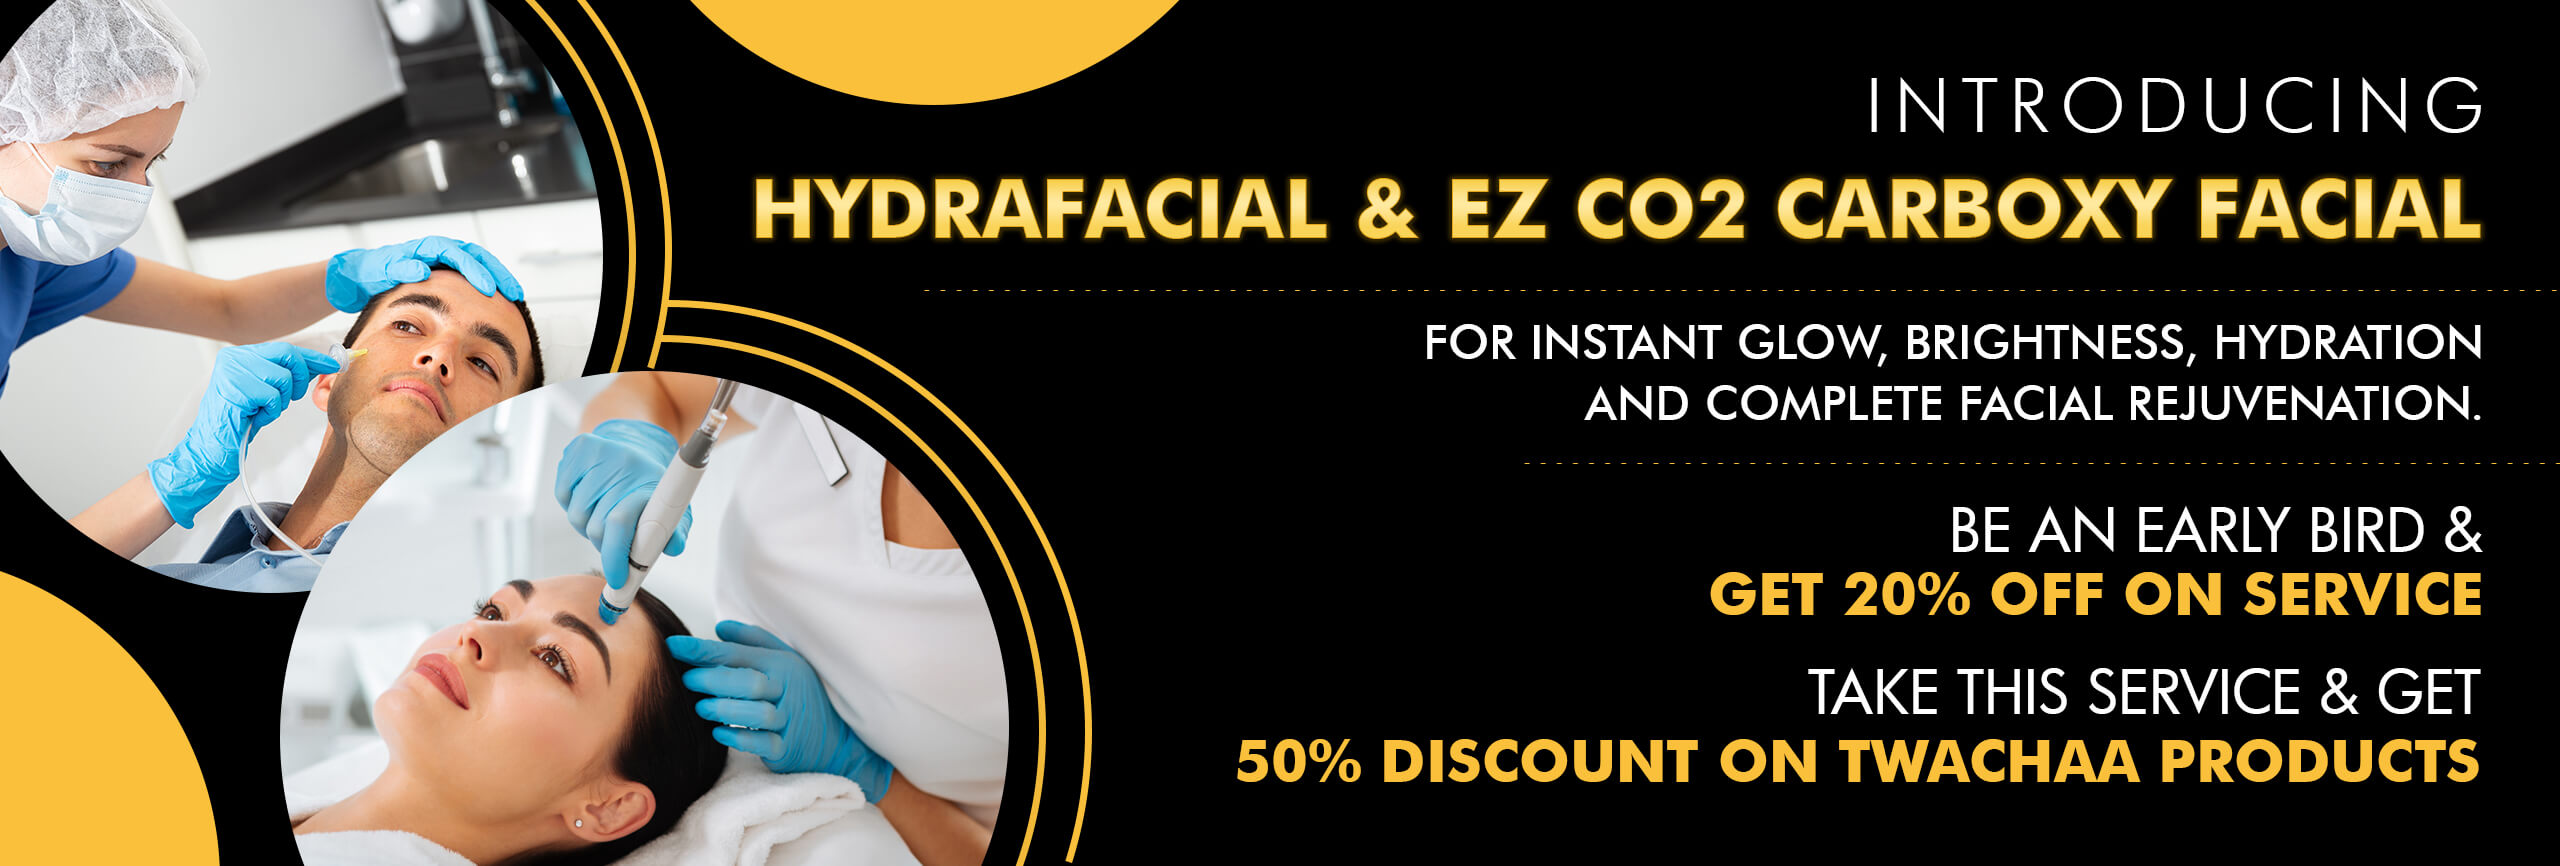 HydraFacial and EZ CO2 Carboxy Facial Offer